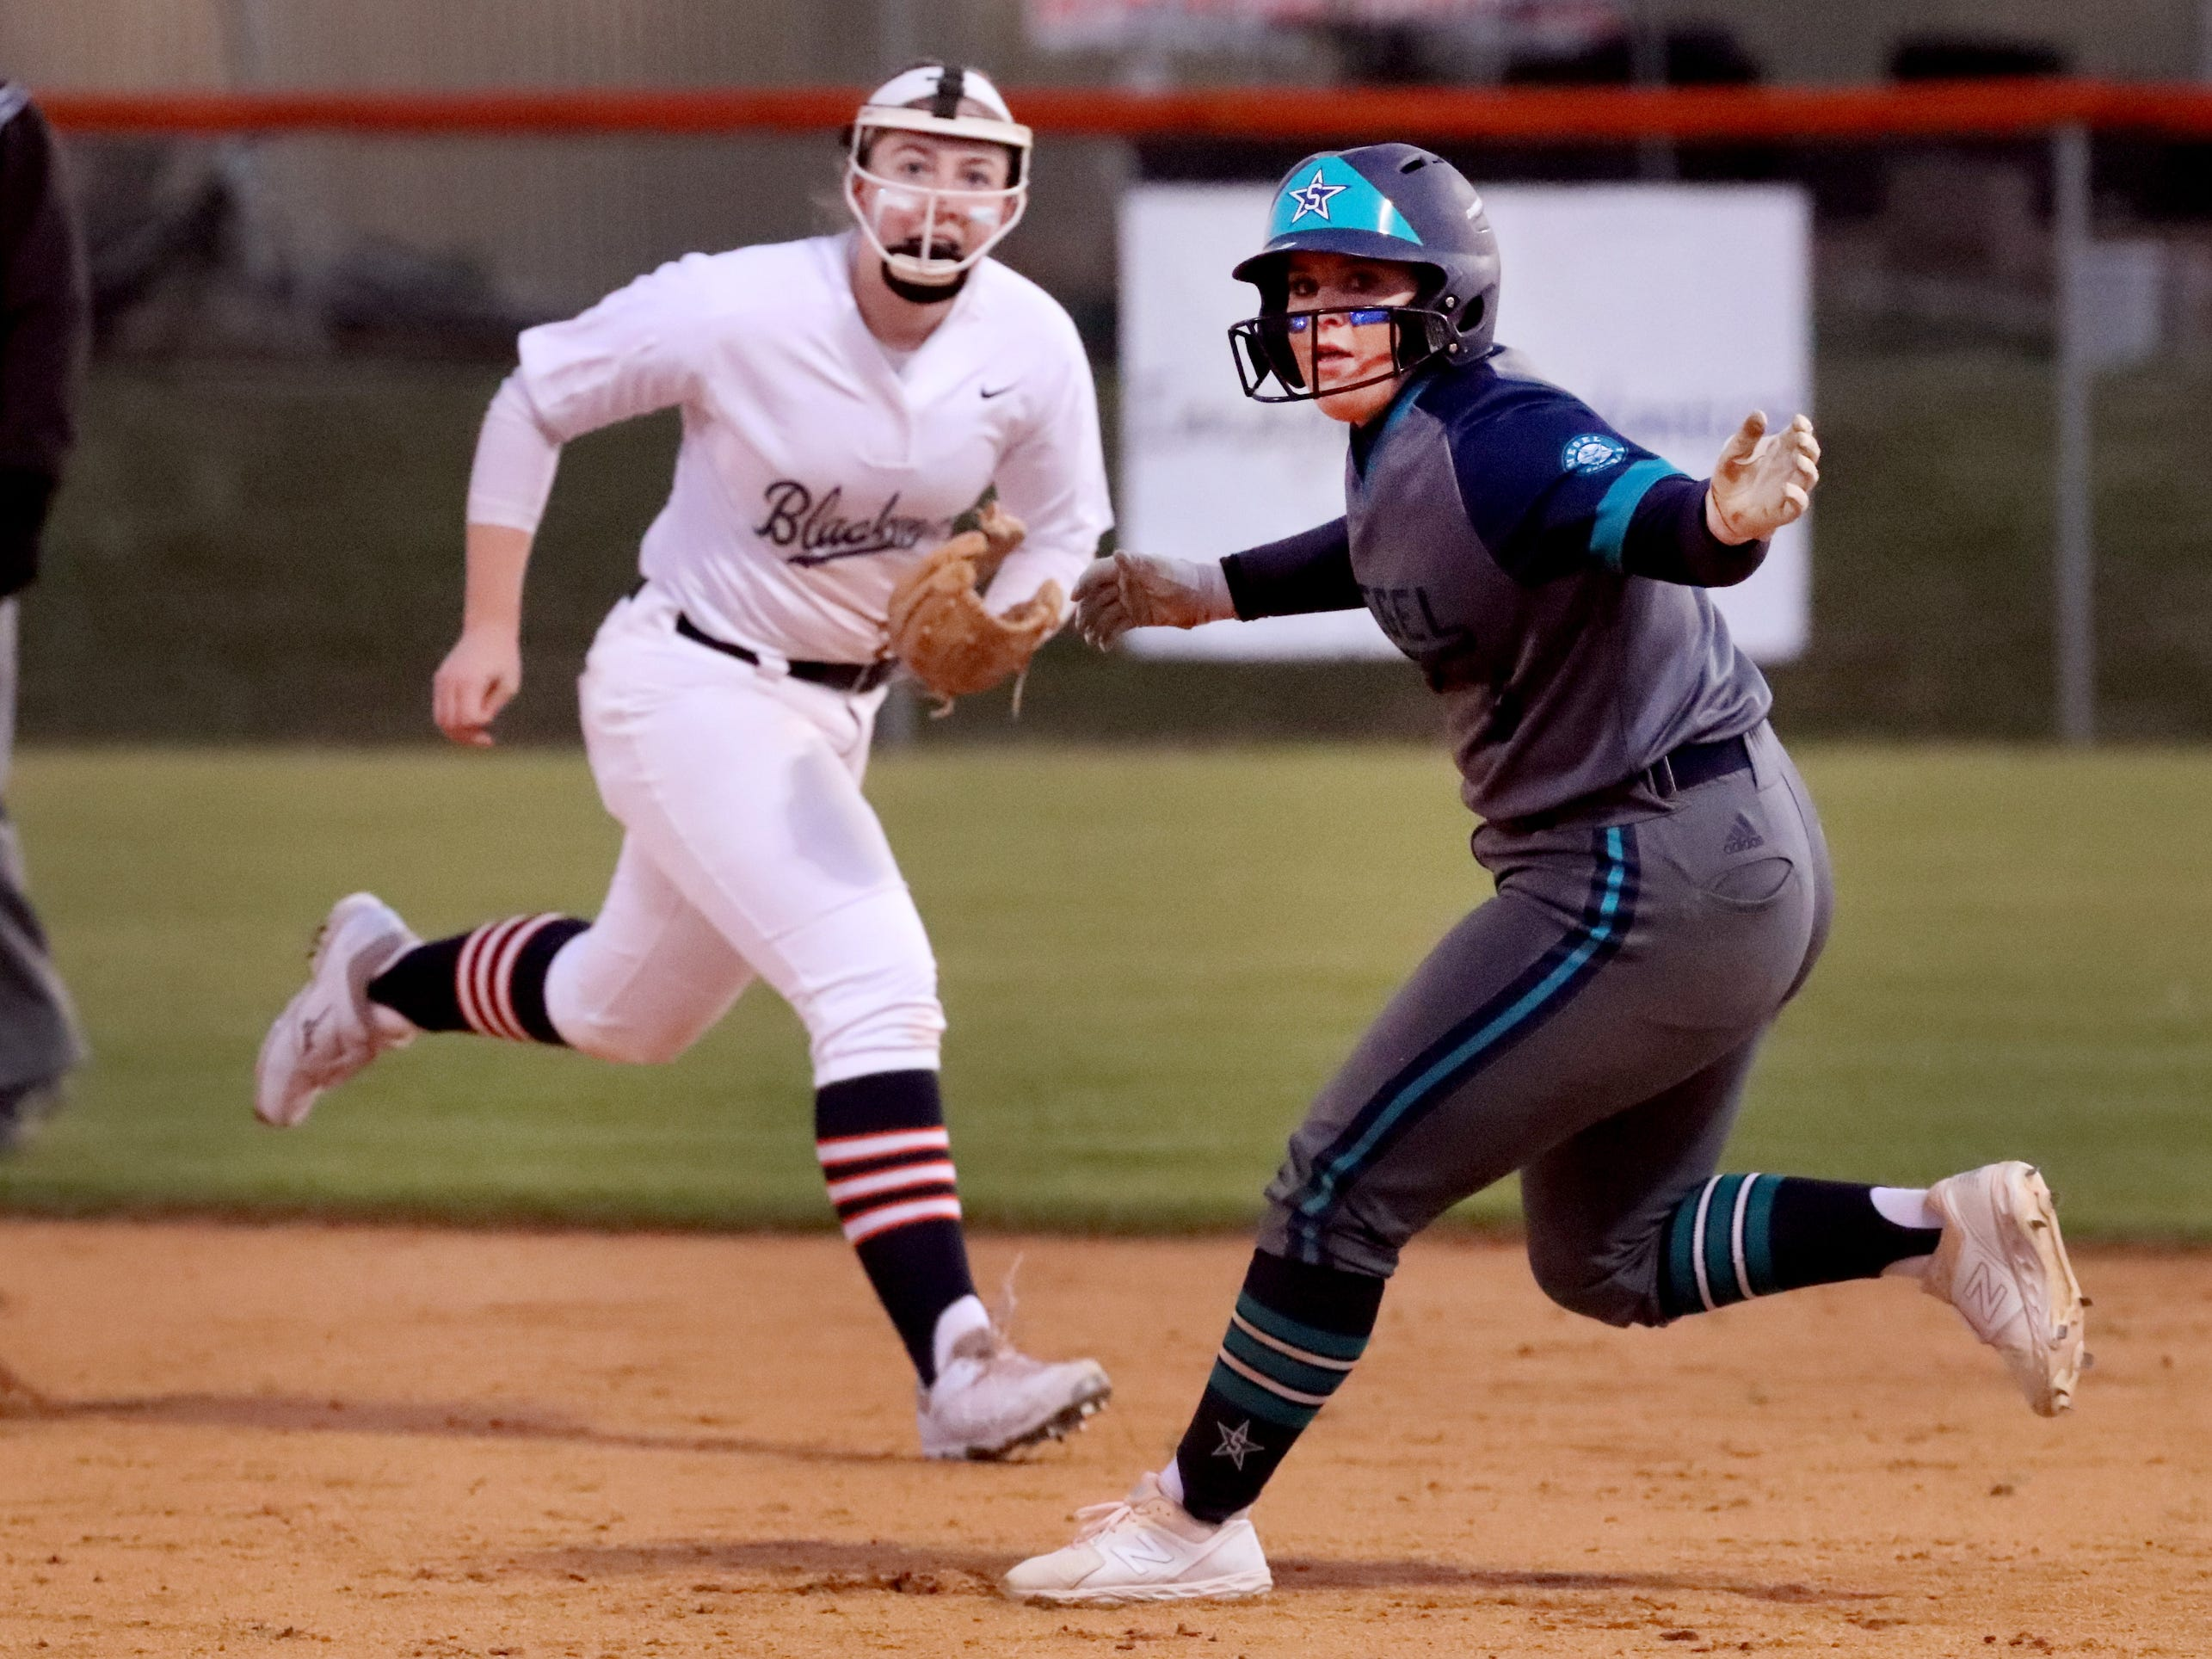 Siegel's Abby Parker (9) takes a lead off first base as Blackman's Elaina McGill (16) watches from behind her, on Monday, March 18, 2019, at Blackman.